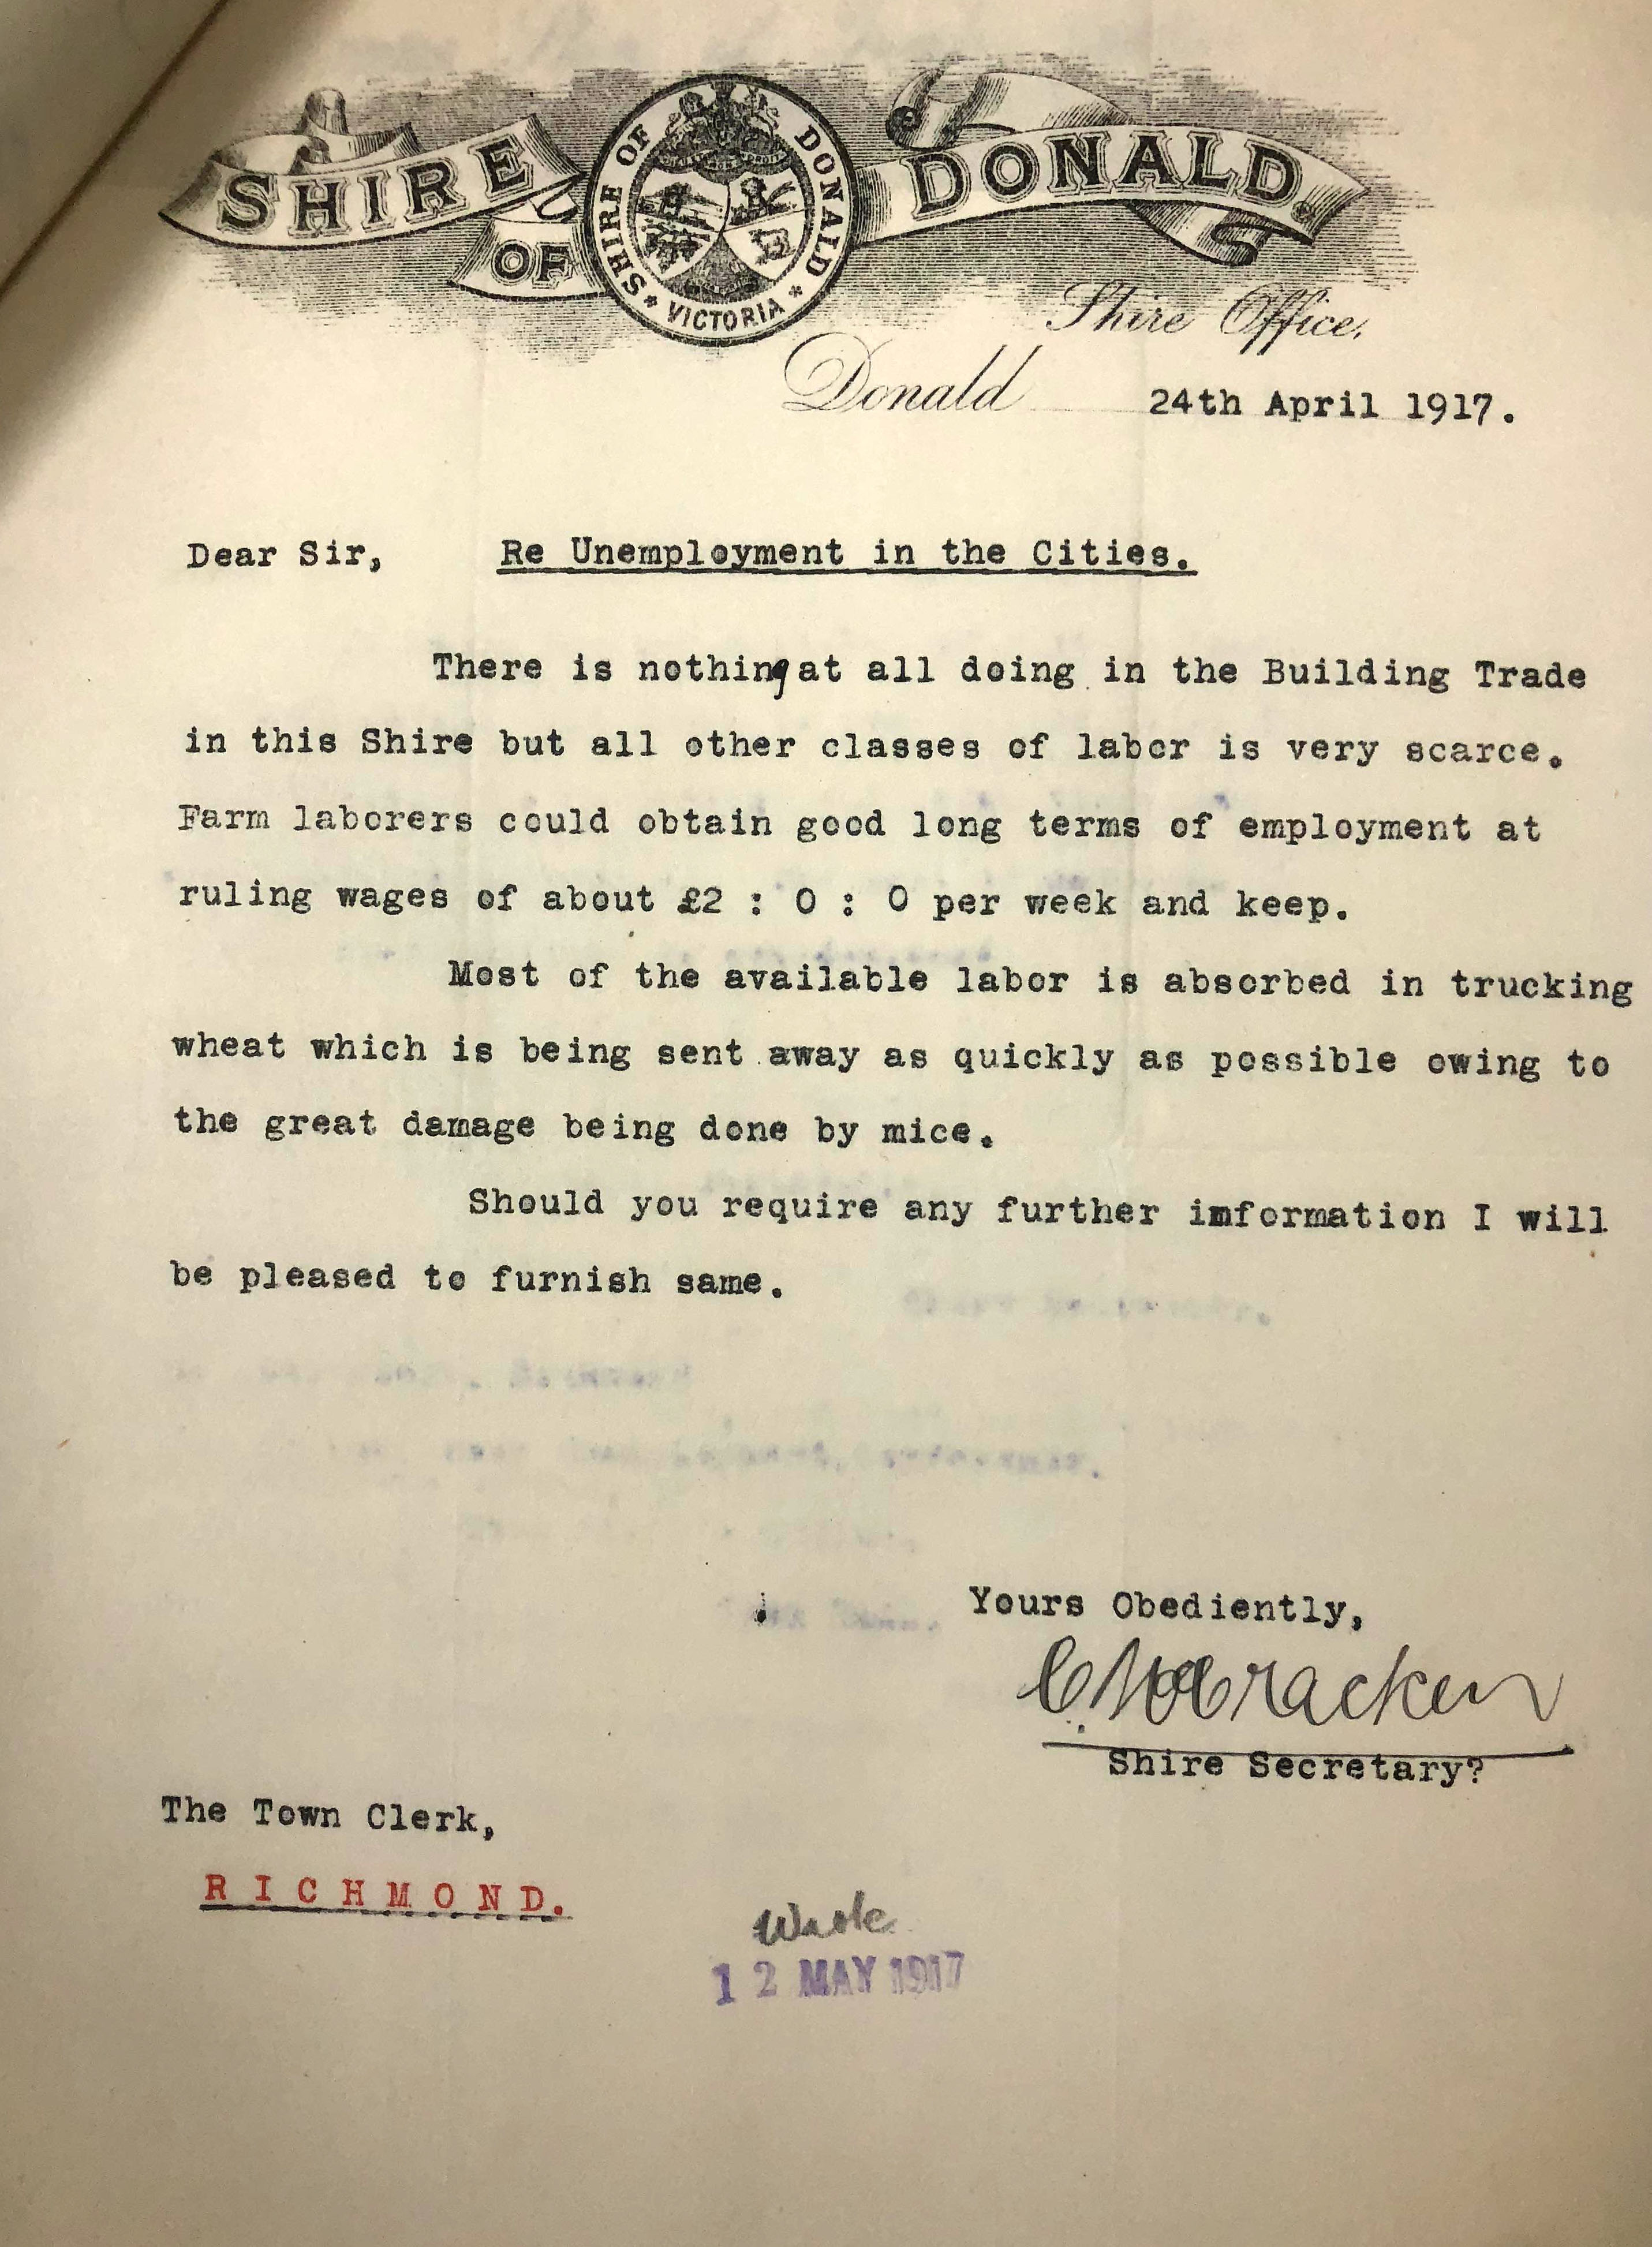 a letter re unemployment in the cities dated 24 April 1917 with Shire of Donald letterhead